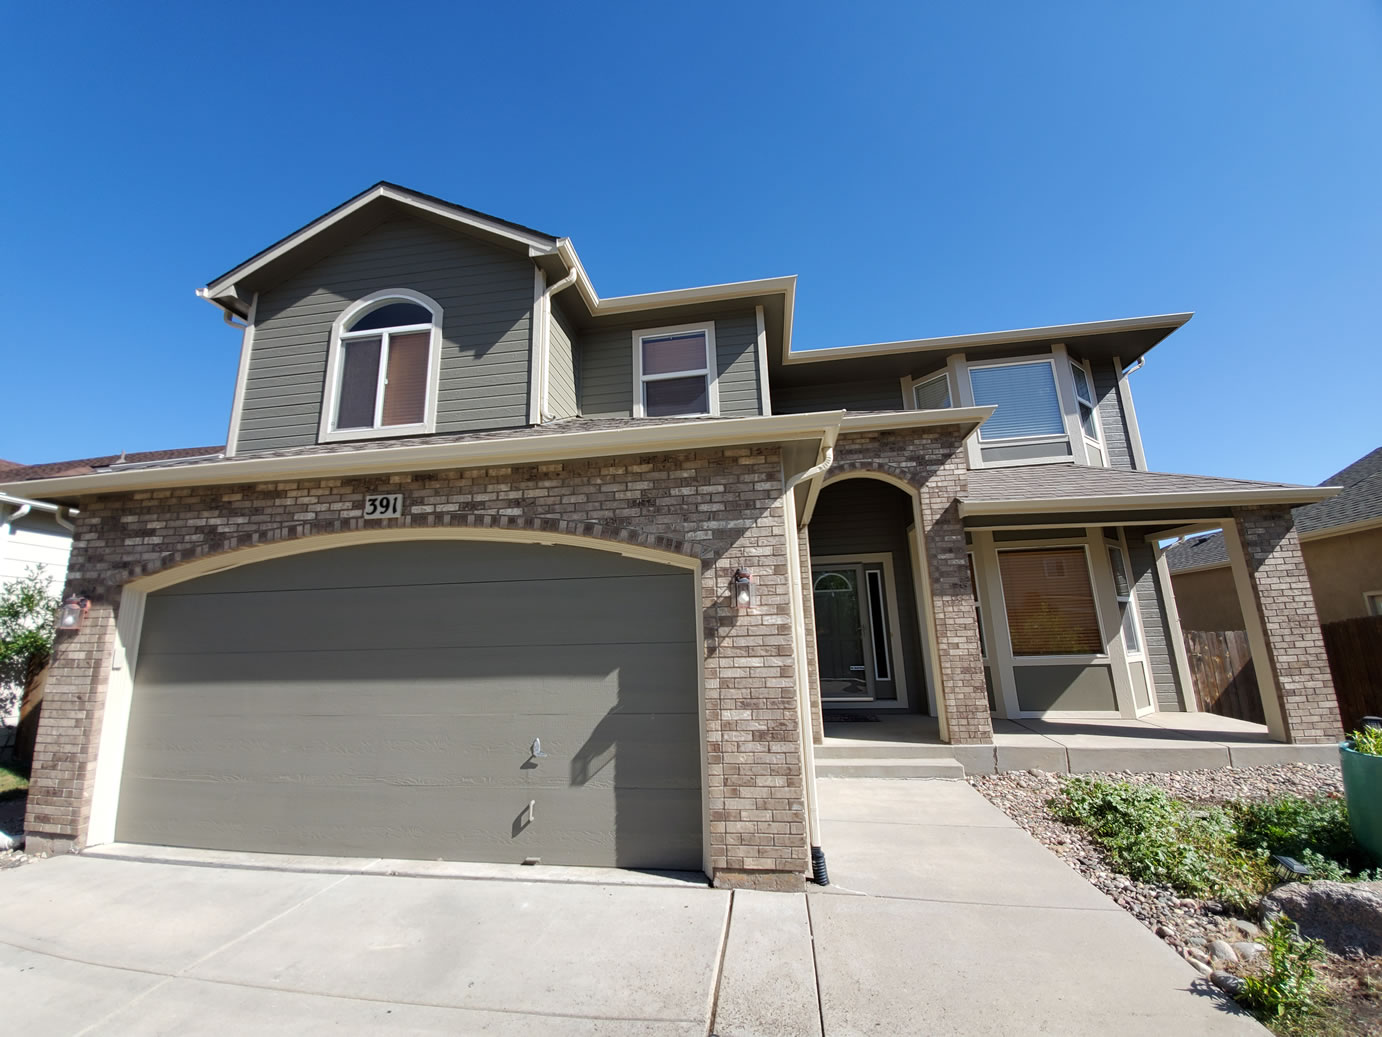 Photo: Colorado Springs House for Rent - $2150.00 / month; 3 Bd & 3 Ba